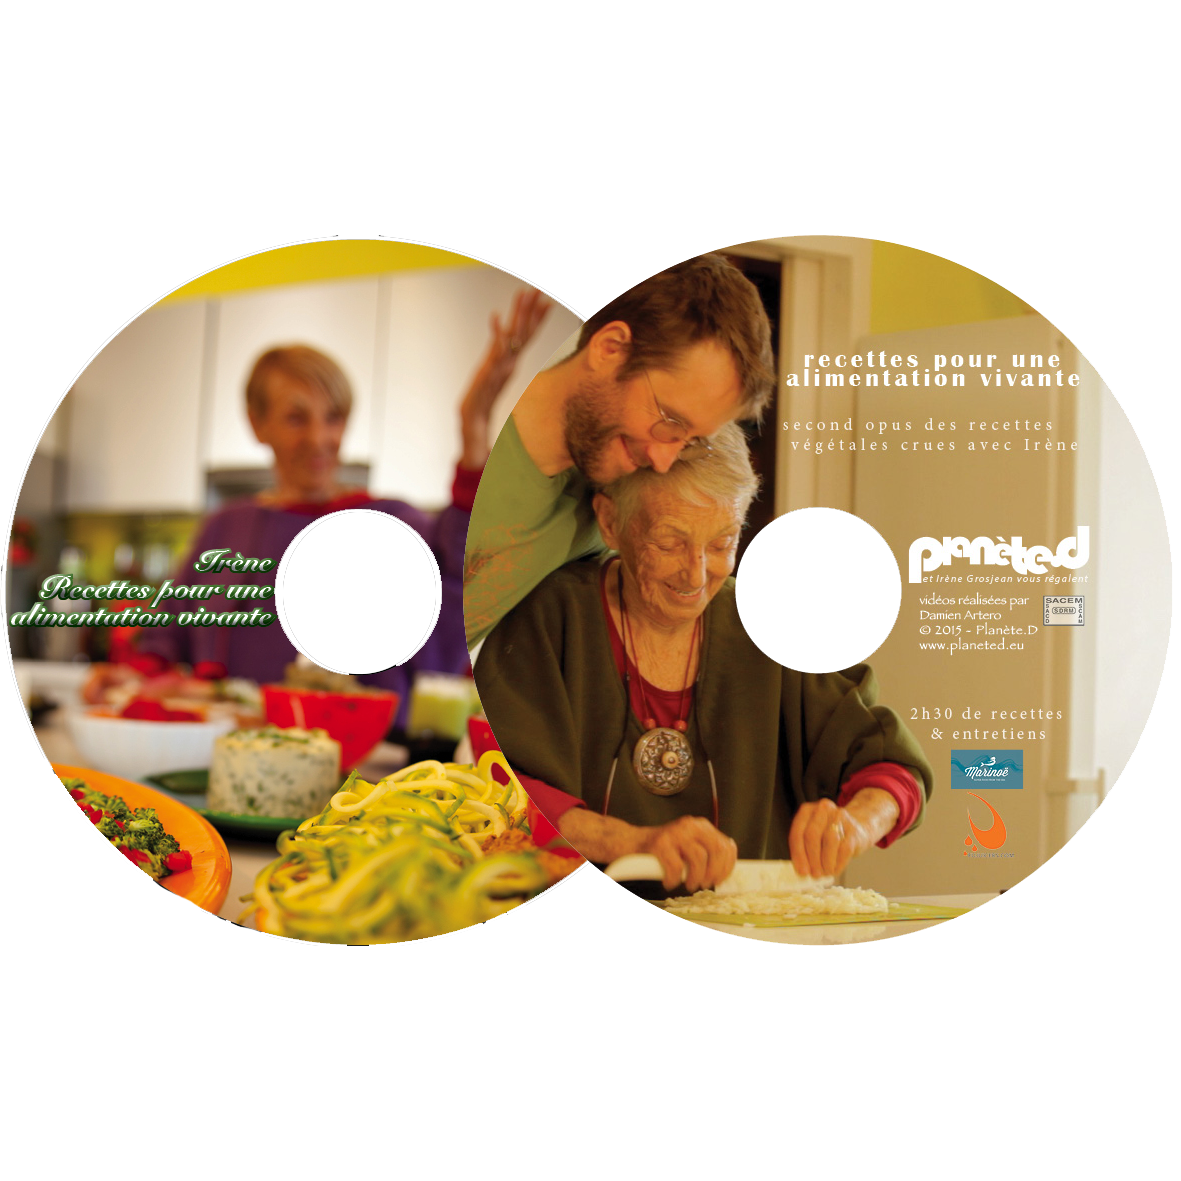 PACK 2 DVD - Recettes végétales crues, tomes 1 et 2 - Vegan raw food recipes, part 1 and 2